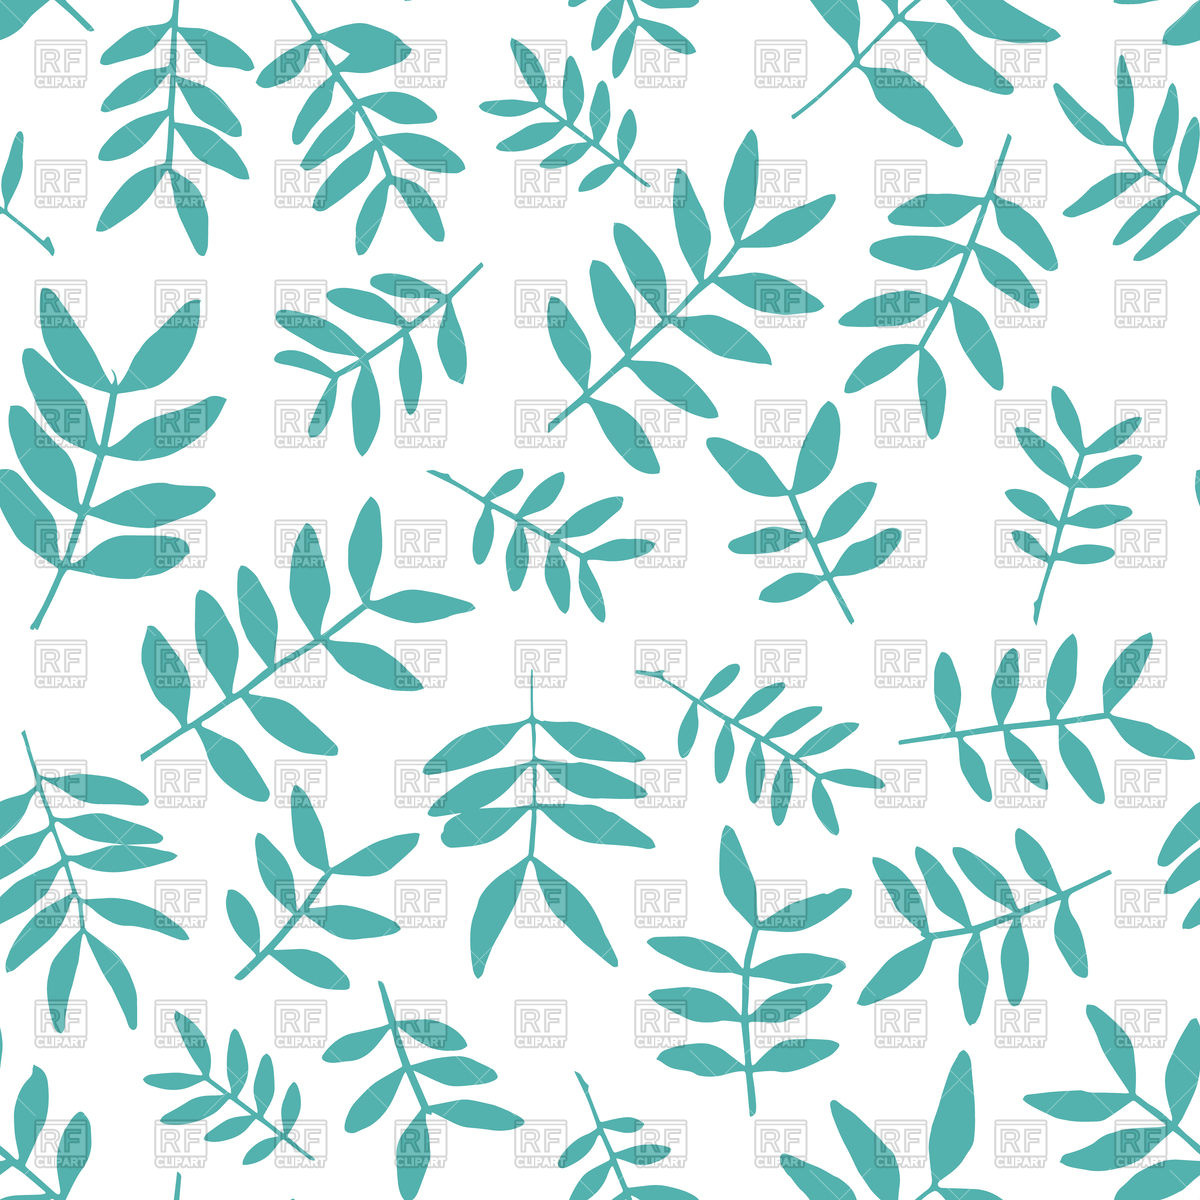 1200x1200 Seamless Pattern With Blue Leaves Vector Image Artwork Of